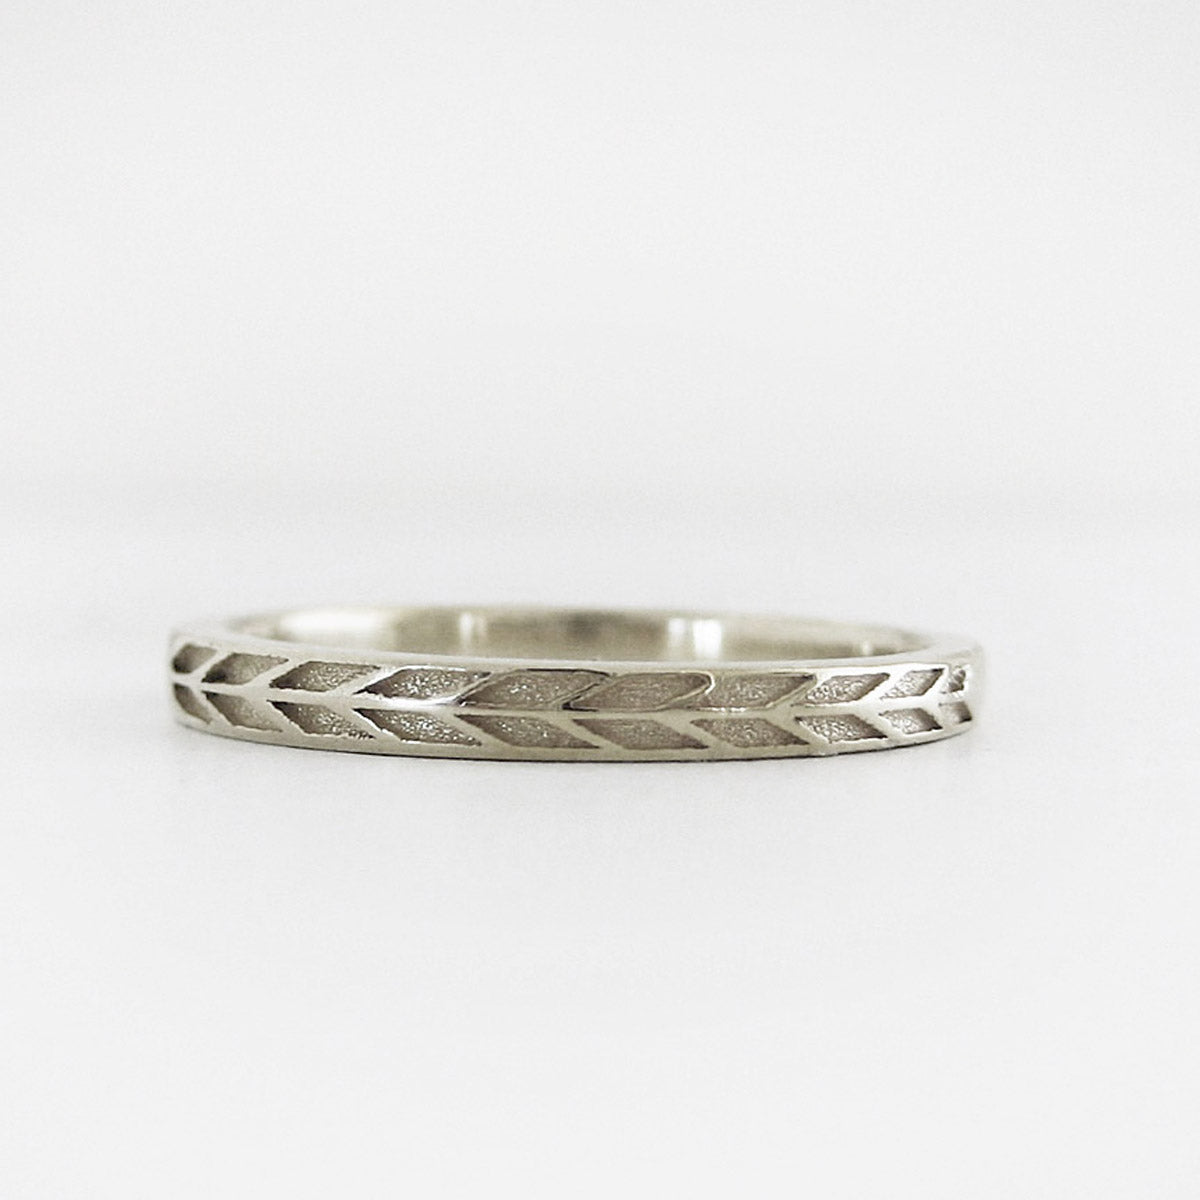 2mm Narrow Arrow Band in White Gold | Marilyn Brogan Jewelry